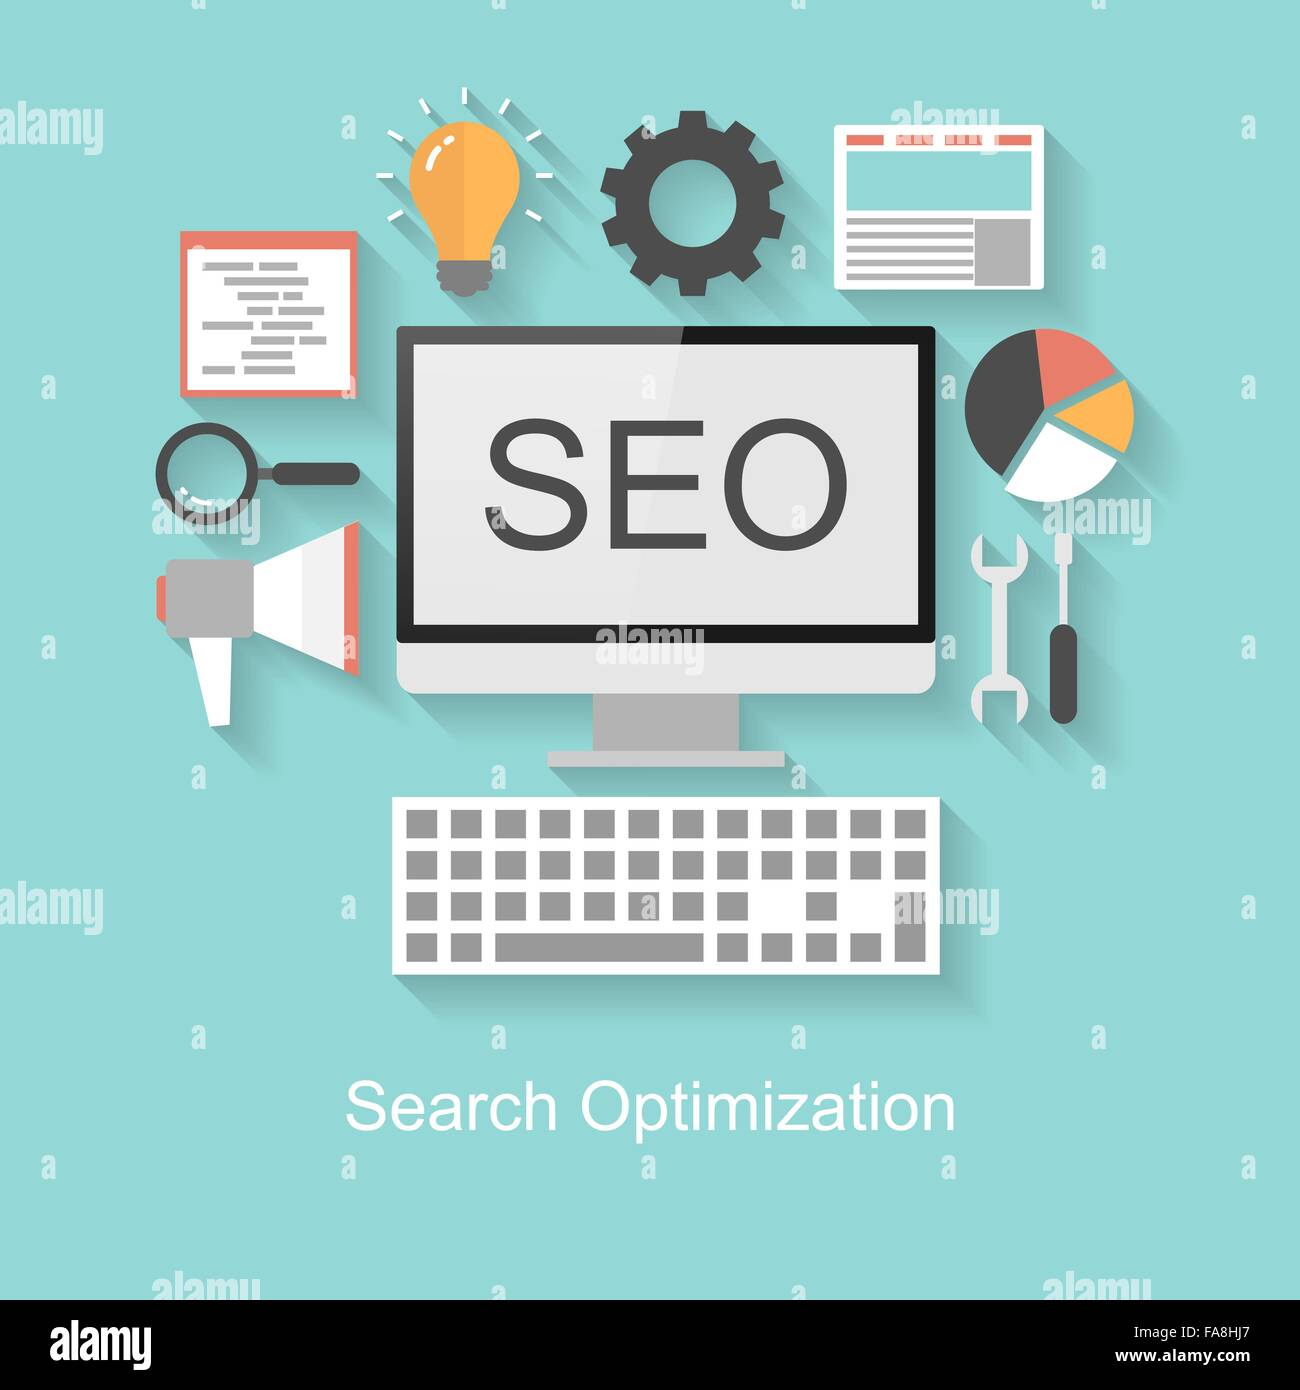 Search optimization concept, flat design with long shadow on turquoise background - Stock Vector